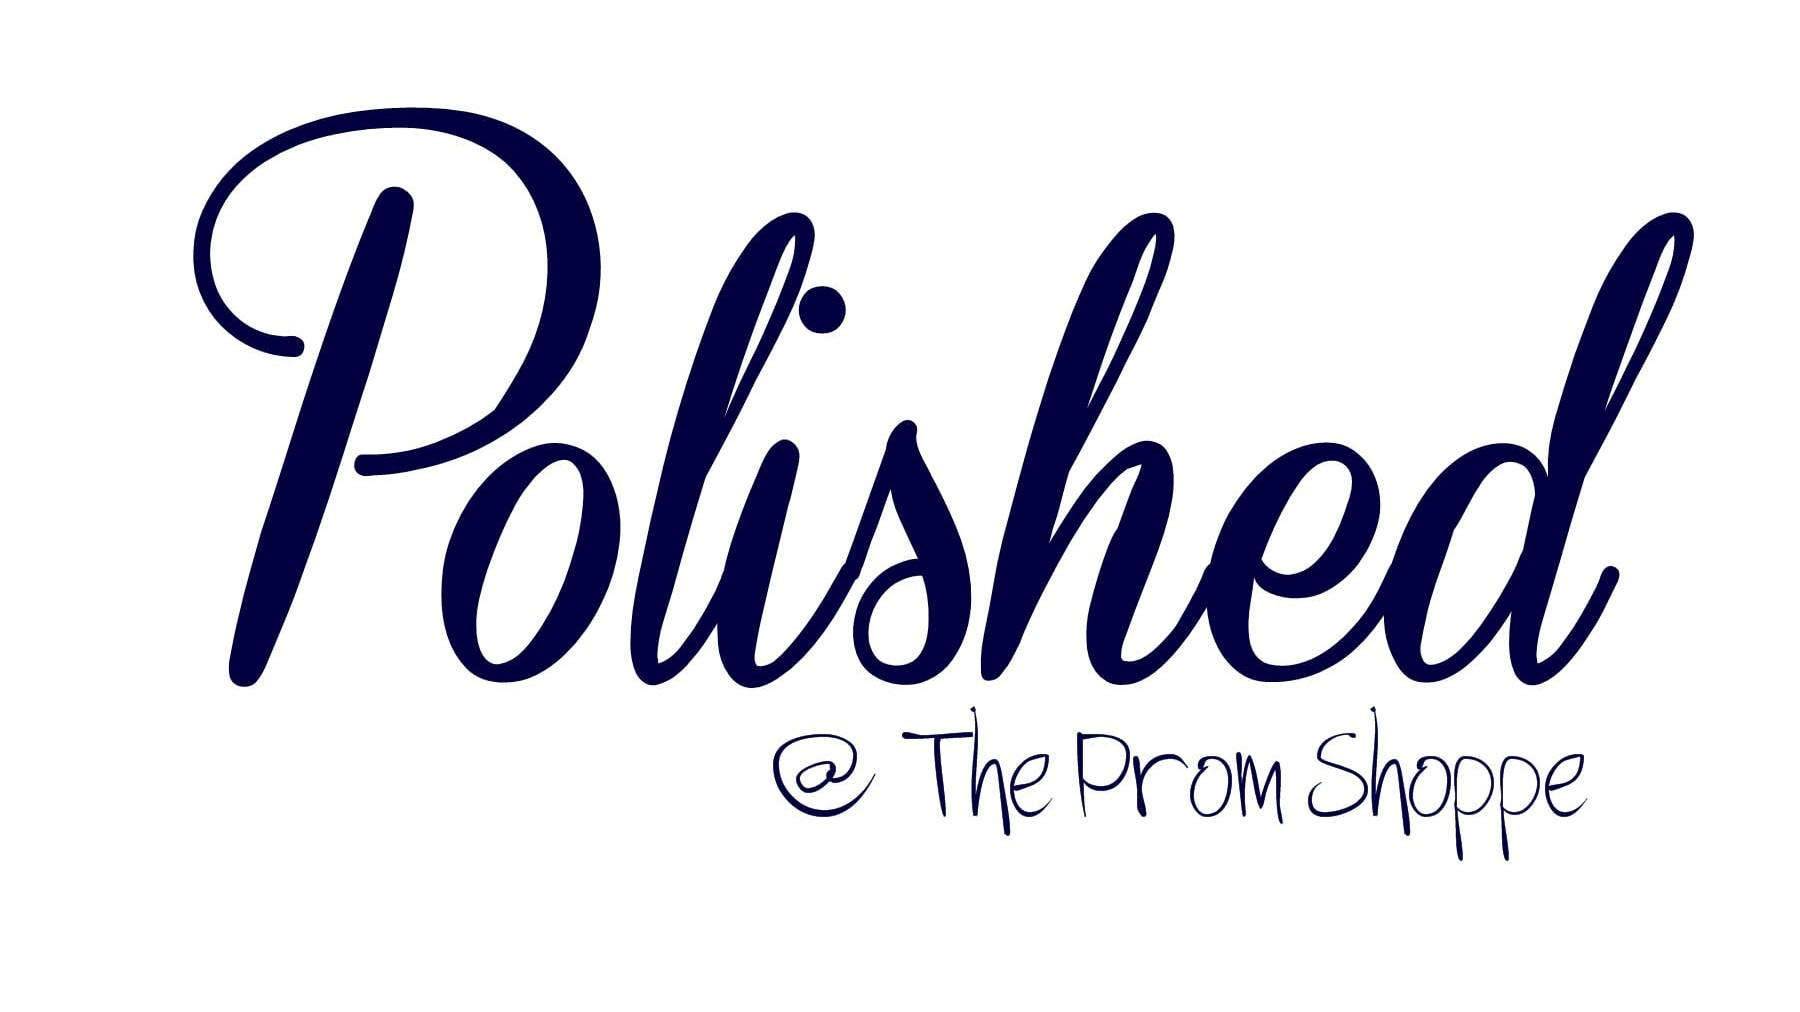 Polished@The Prom Shoppe - The finishing touches for your Prom Look